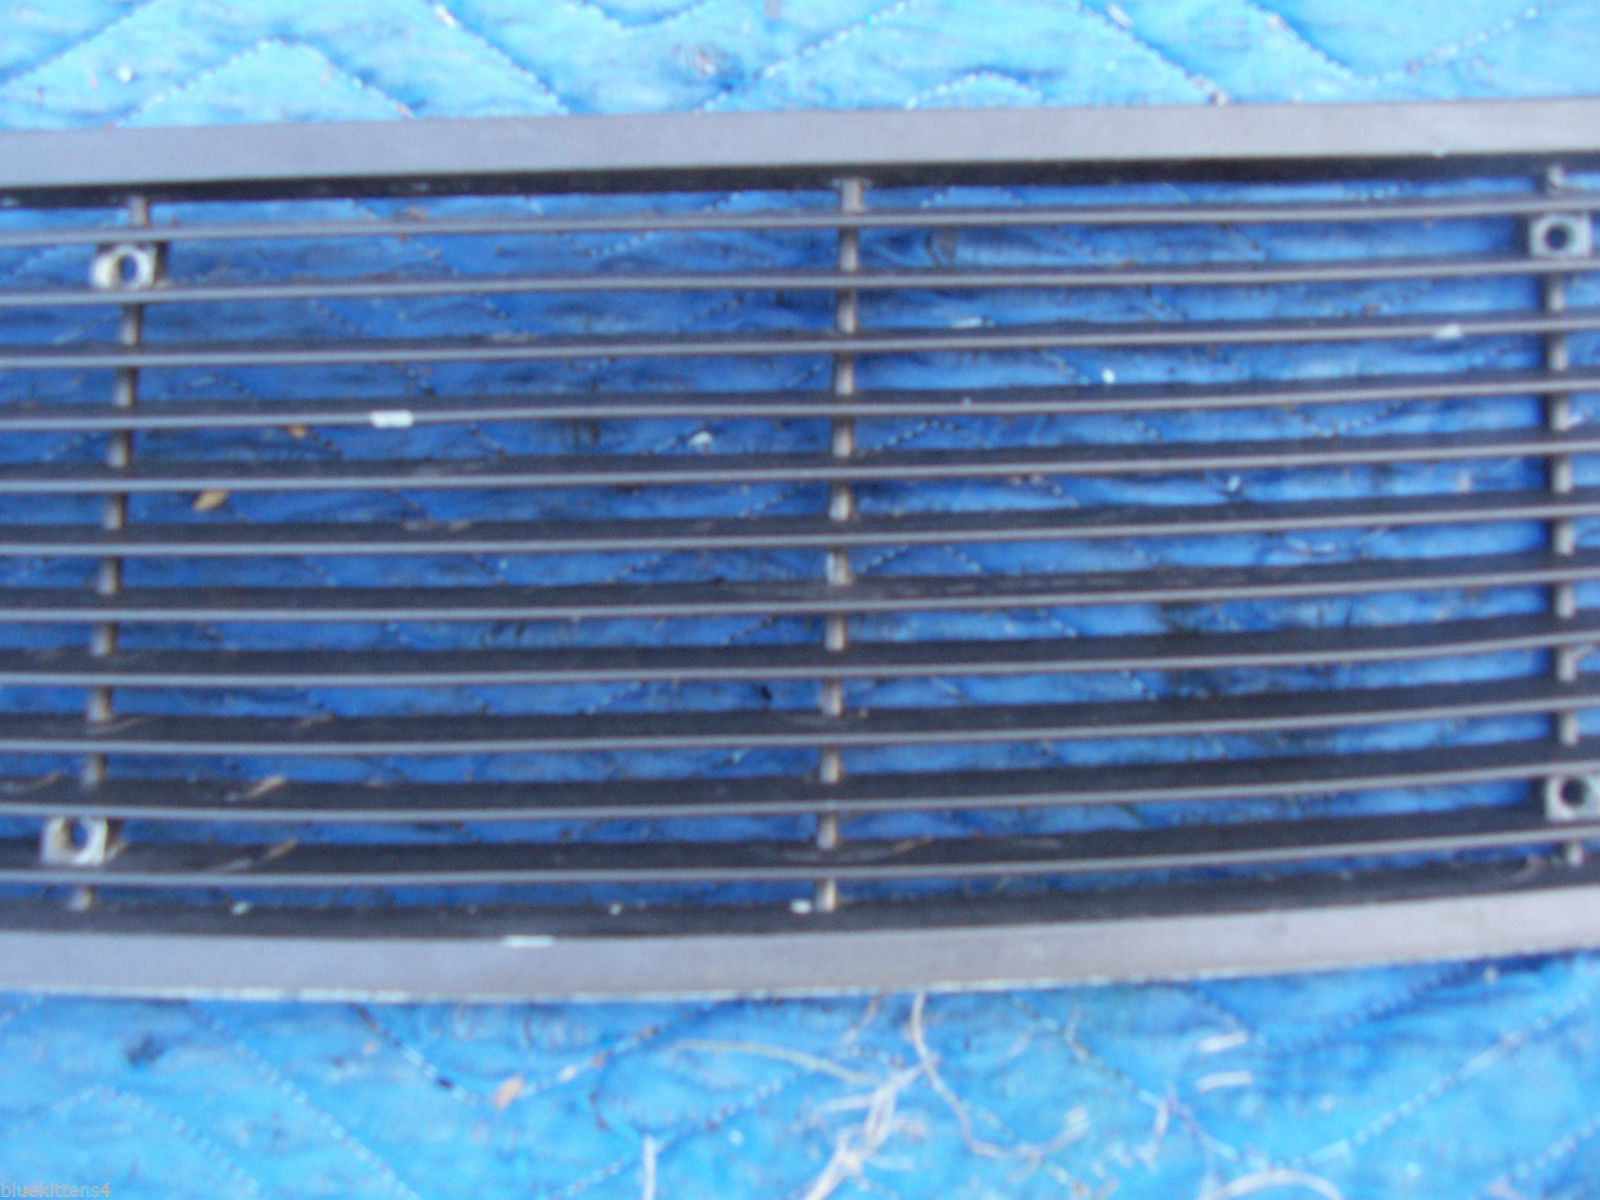 1971 MARK  III  TRUNK GRILL REAR DECK USED ORIG LINCOLN FORD PART # C8LB-65403C1 image 6